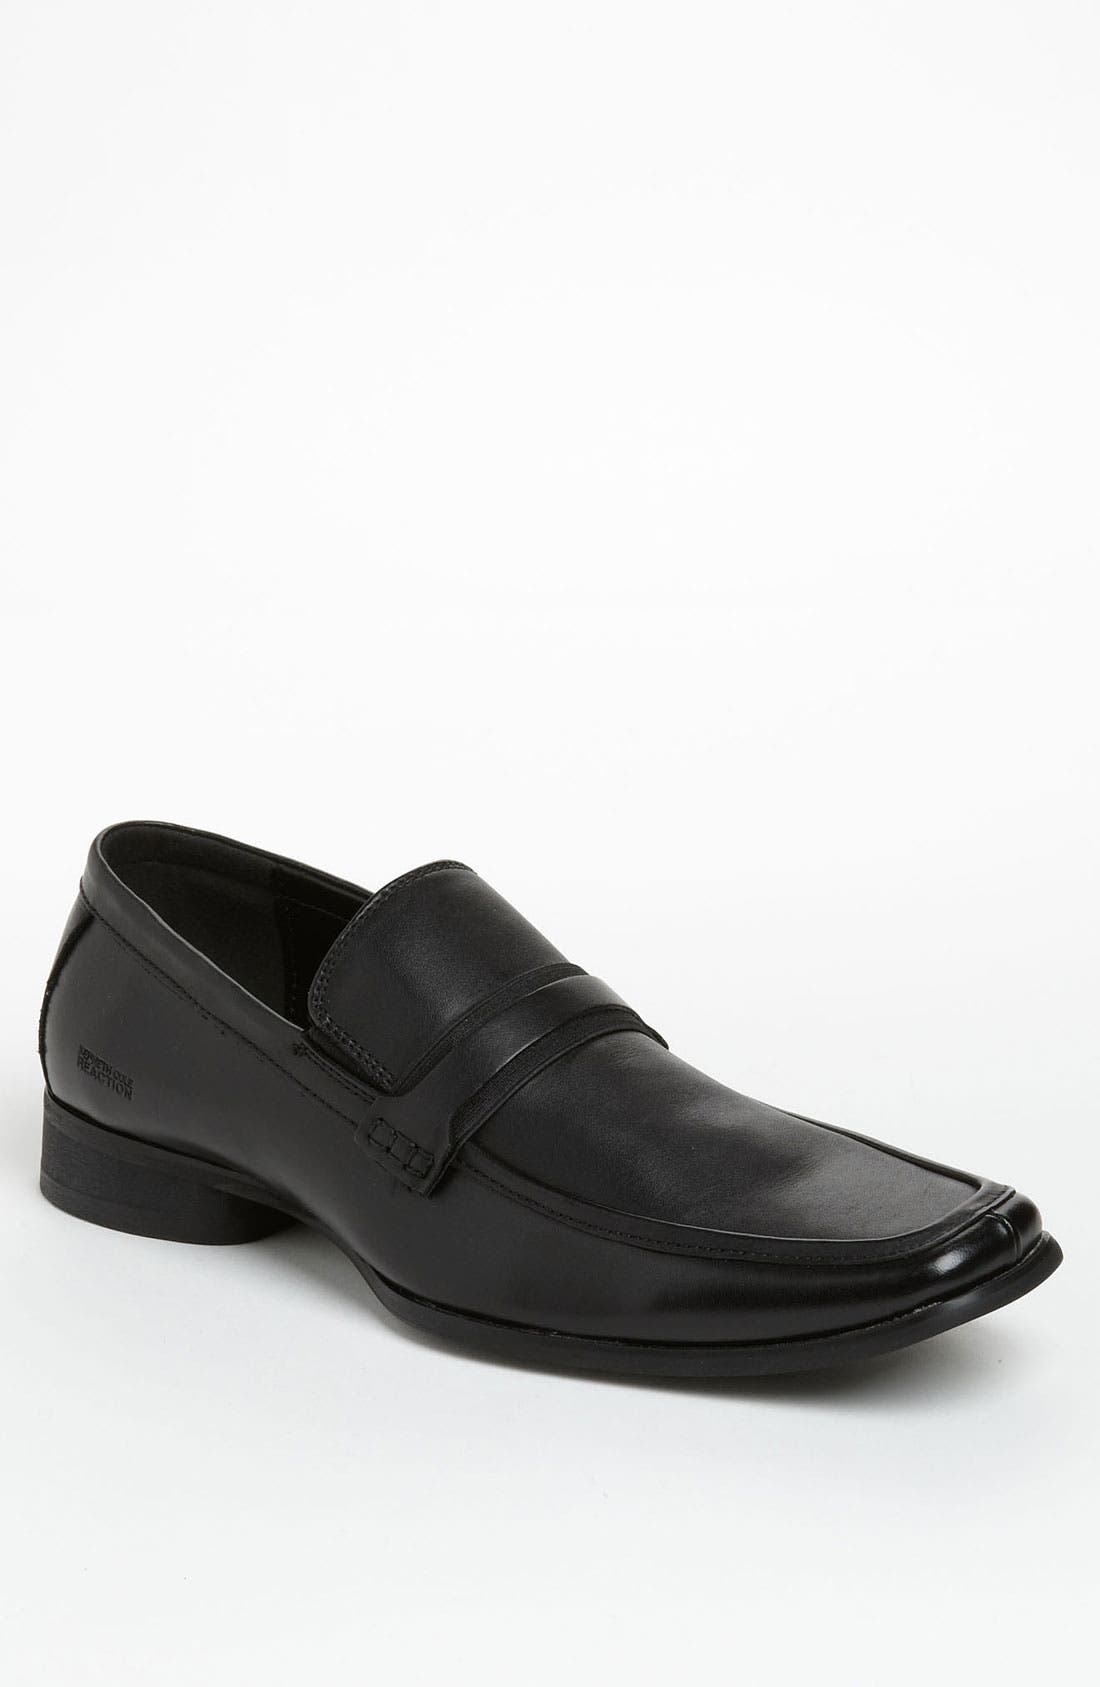 Alternate Image 1 Selected - Kenneth Cole Reaction 'Note Keeper' Loafer (Online Only)